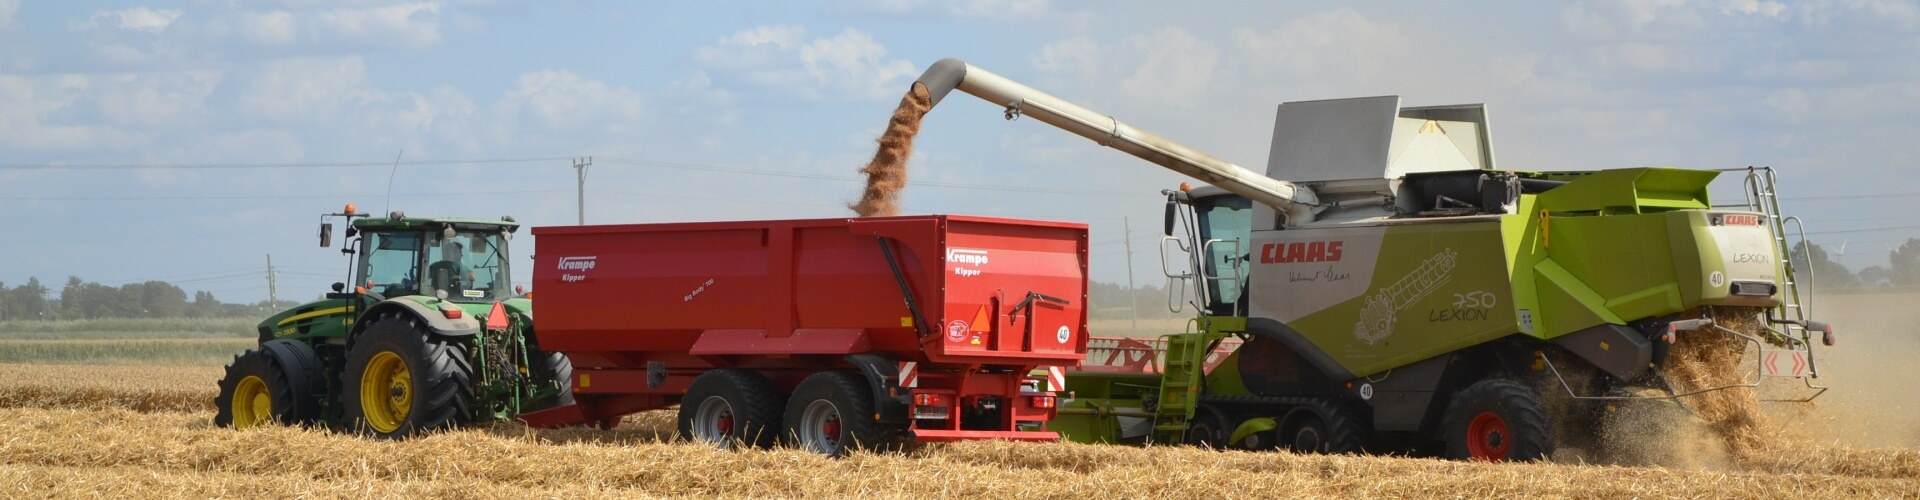 Claas combine unloading with krampe trailer